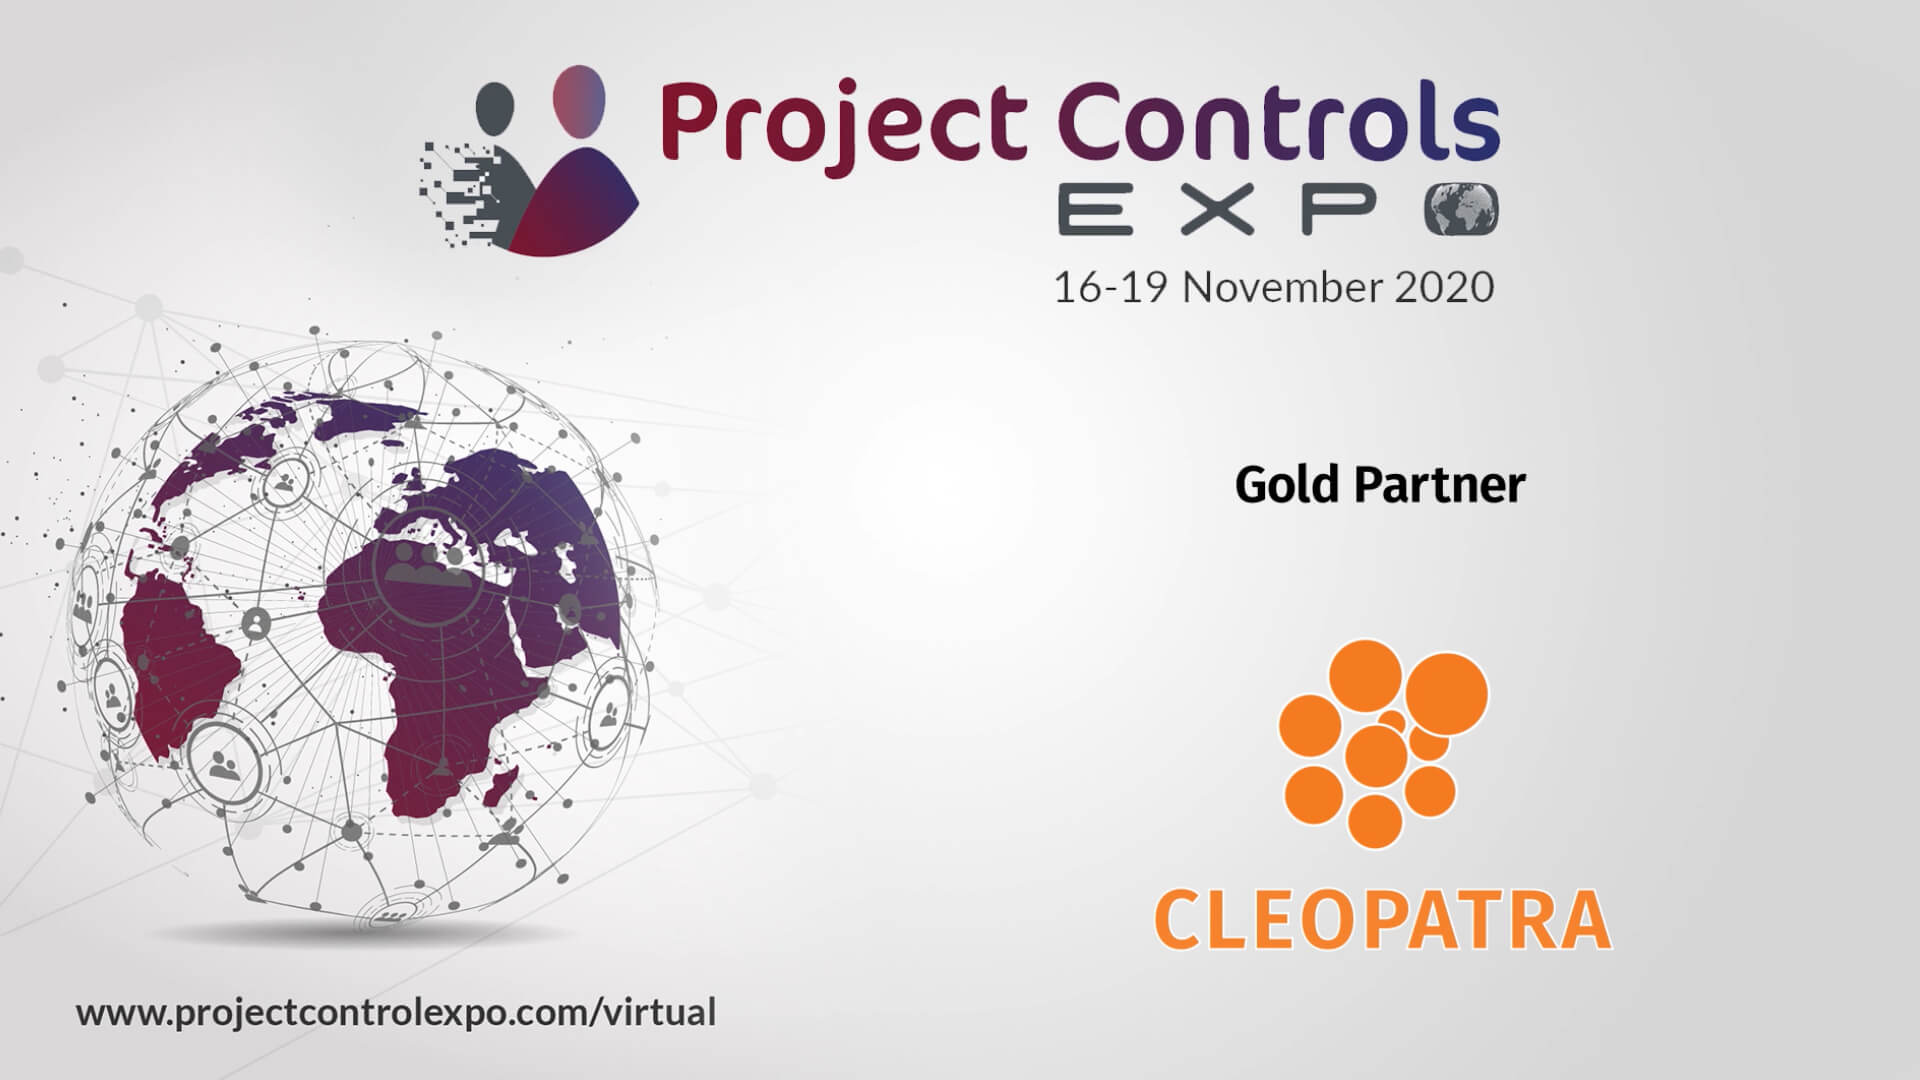 Cleopatra Enterprise at the Virtual Project Controls Expo 2020